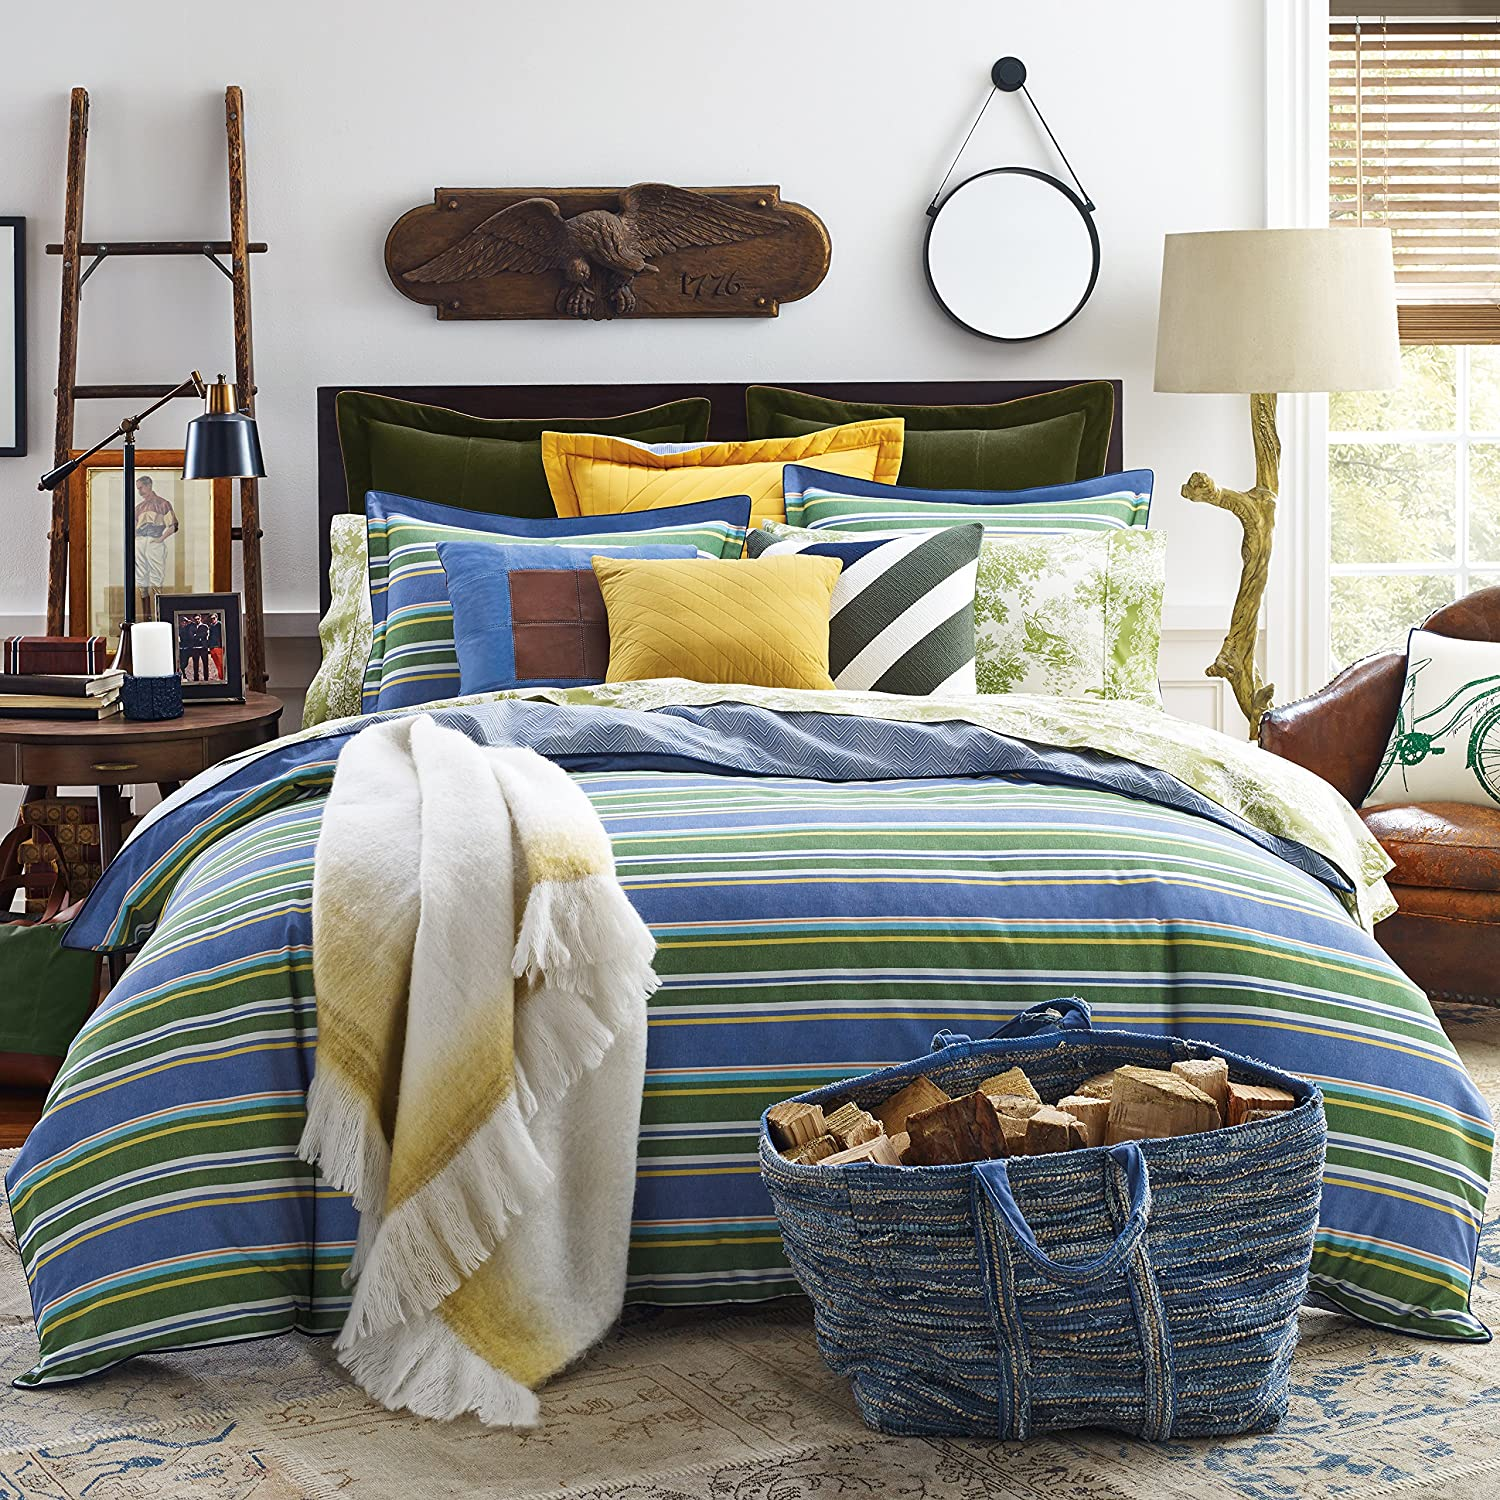 Tommy Hilfiger green bedding sets